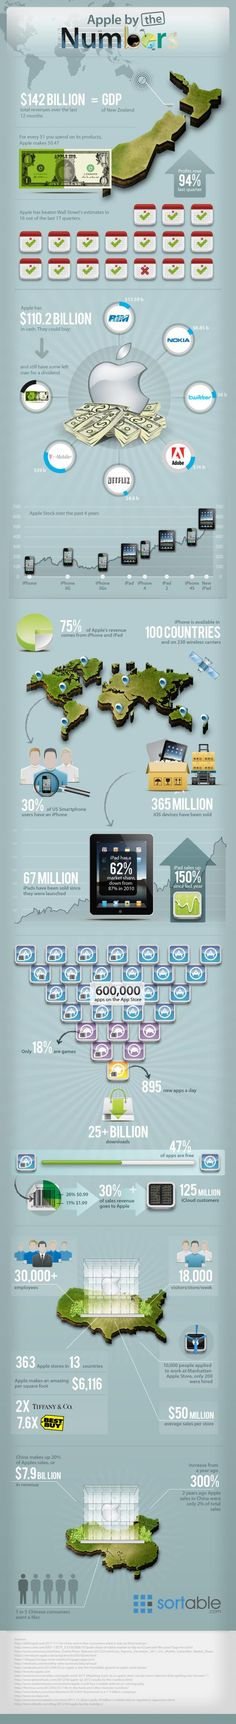 Apple by the numbers (infographic)